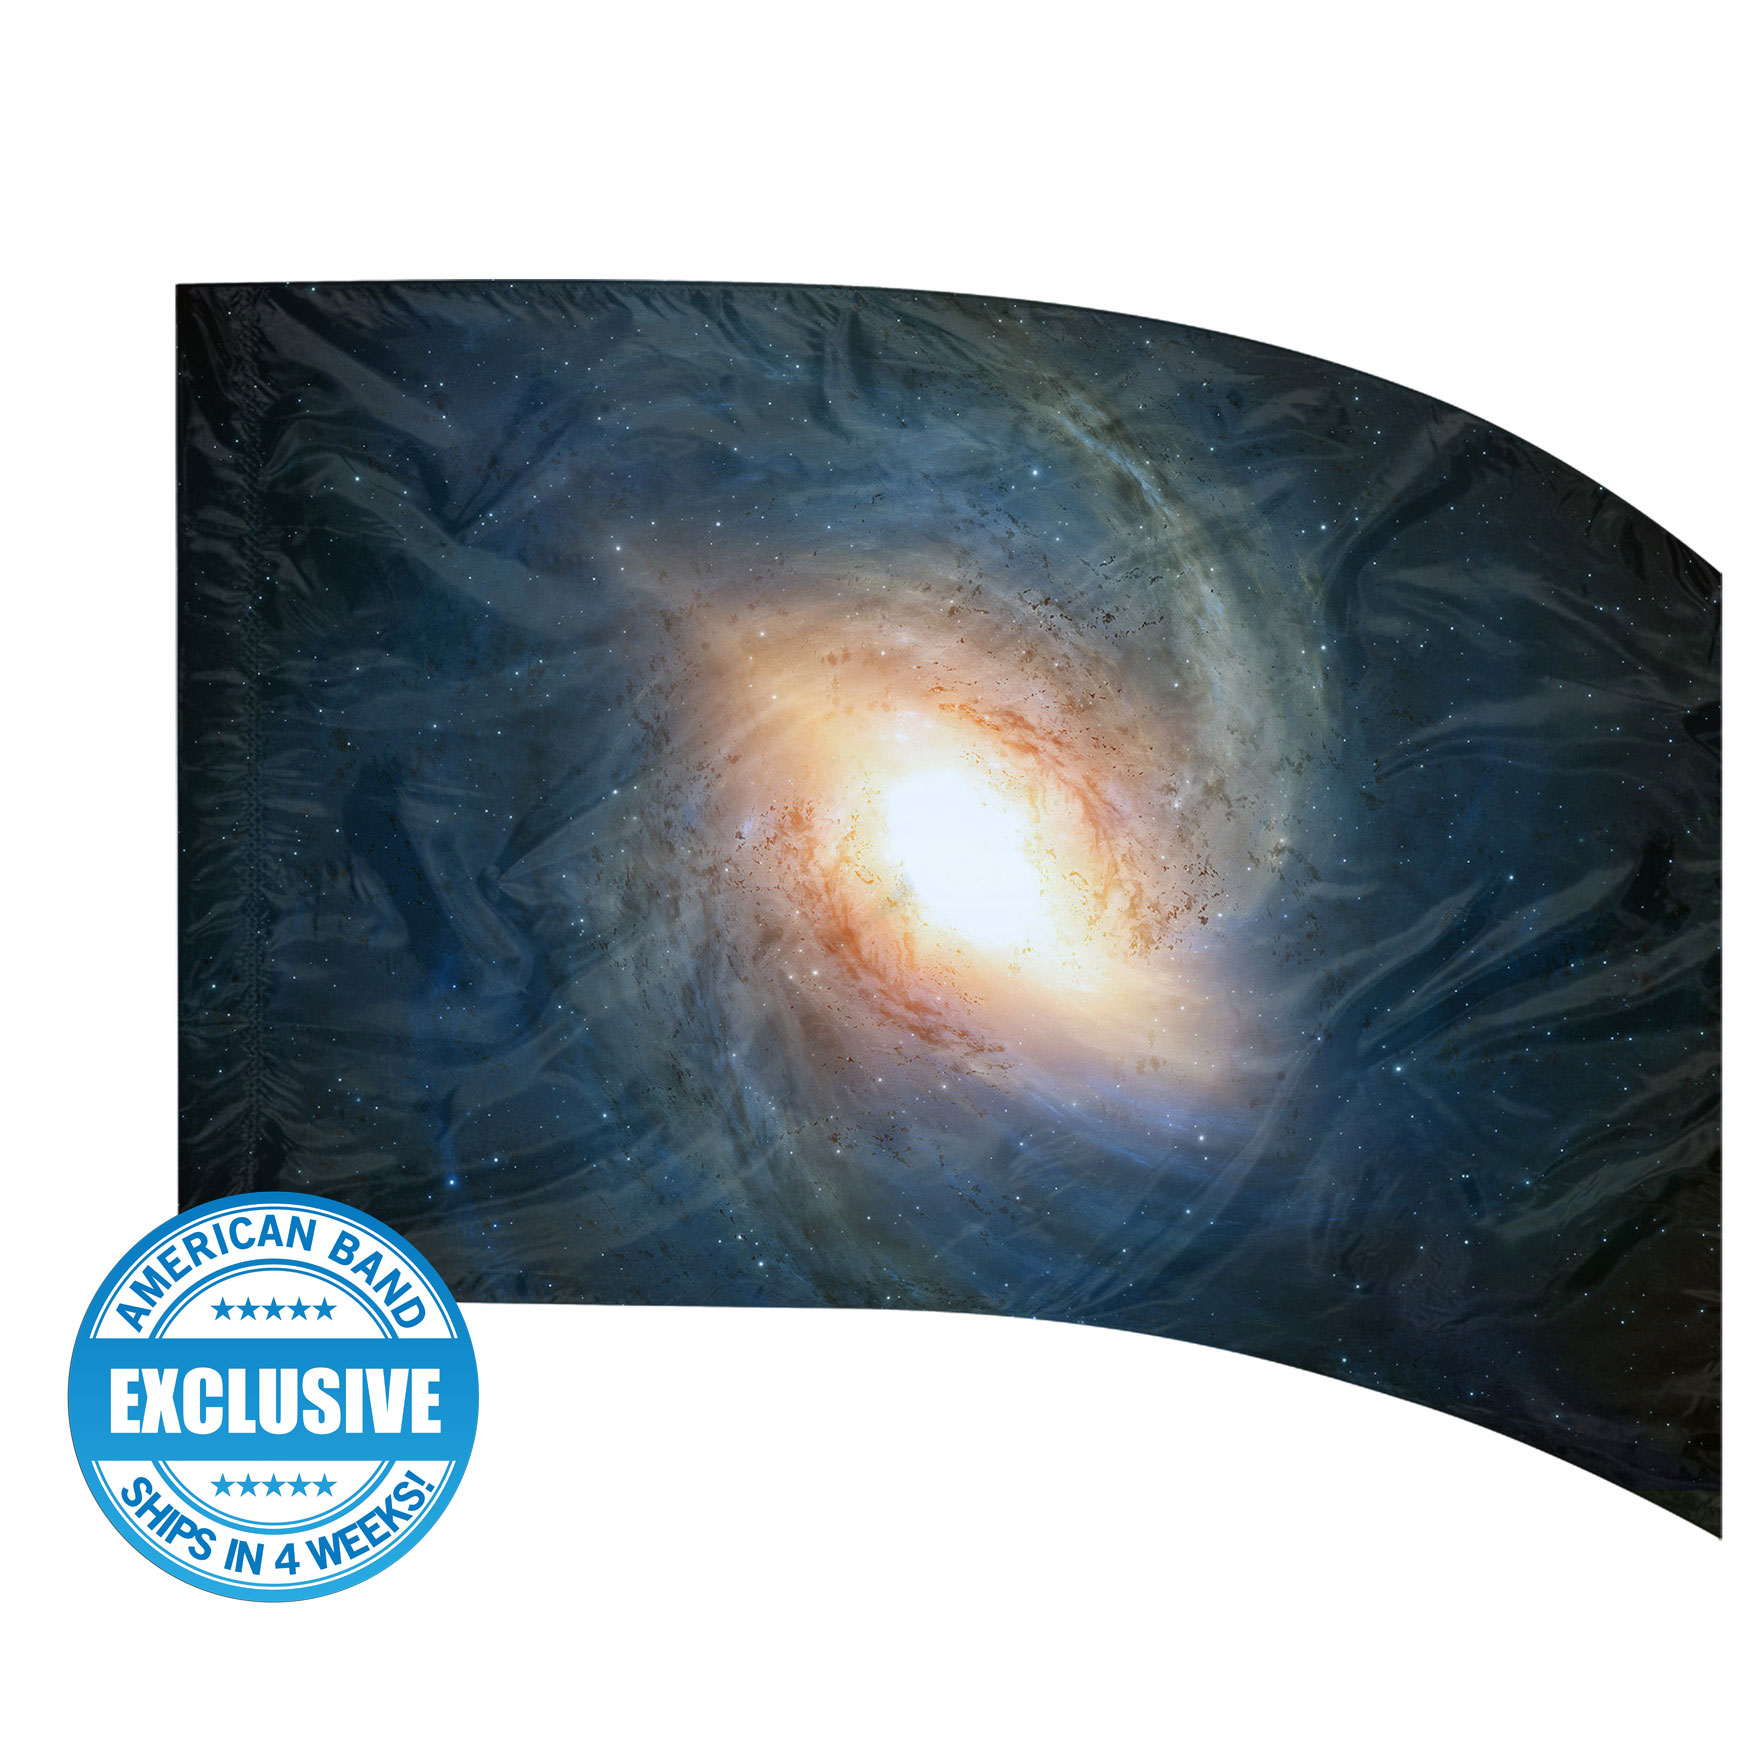 Made-to-Order Digital Cosmos Flags: Style 10